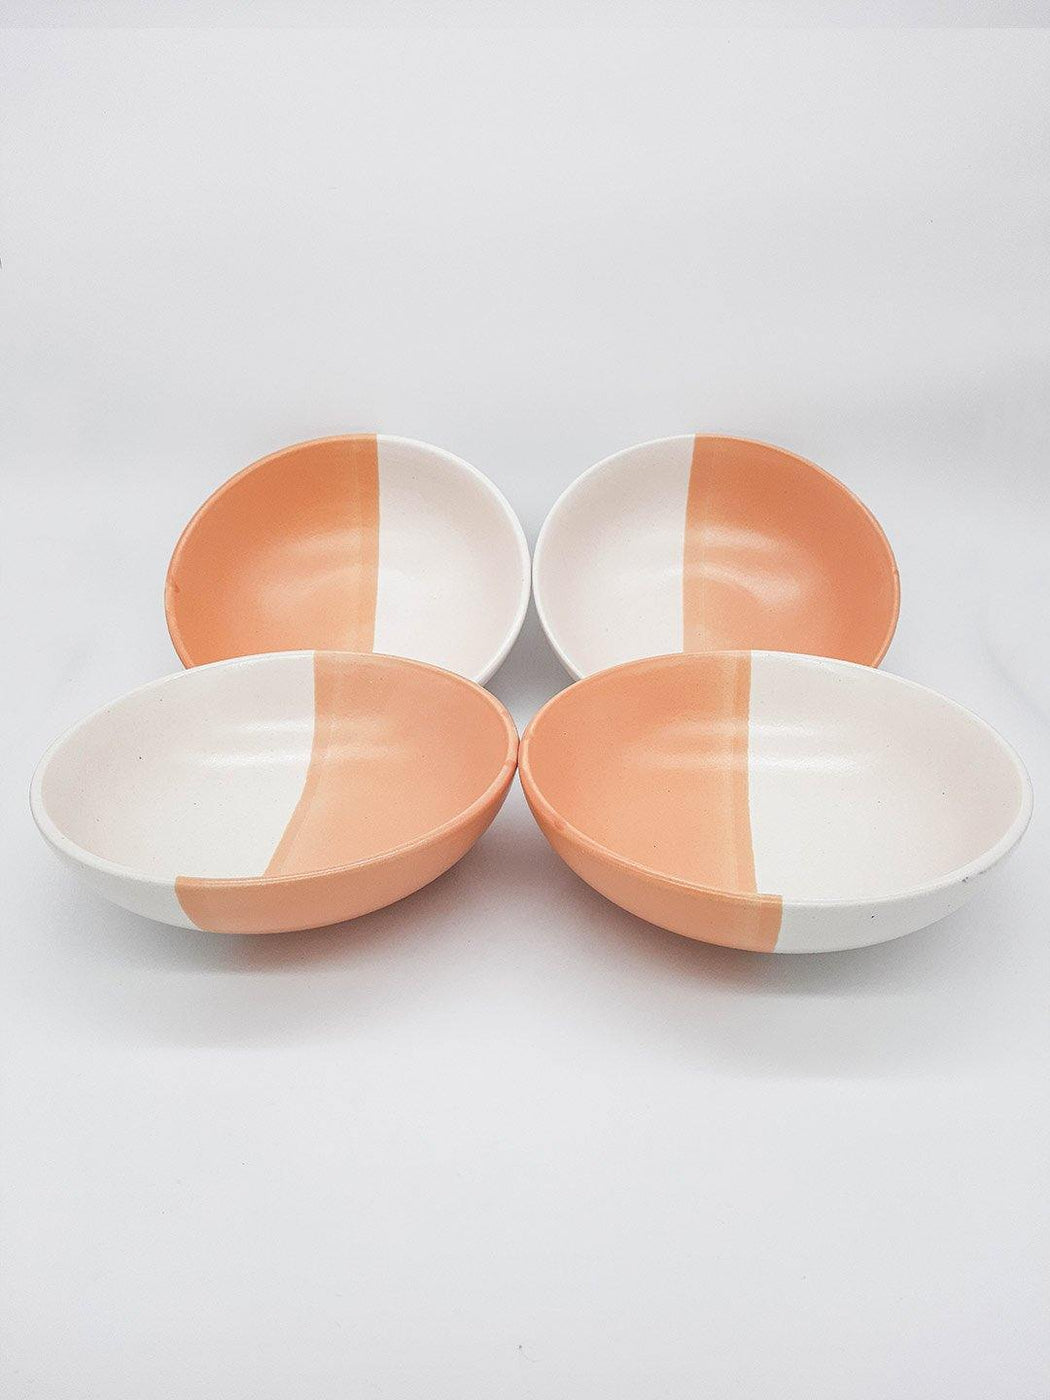 Kypelo Bowl Rustic Orange - Set of 4 - Thevasa